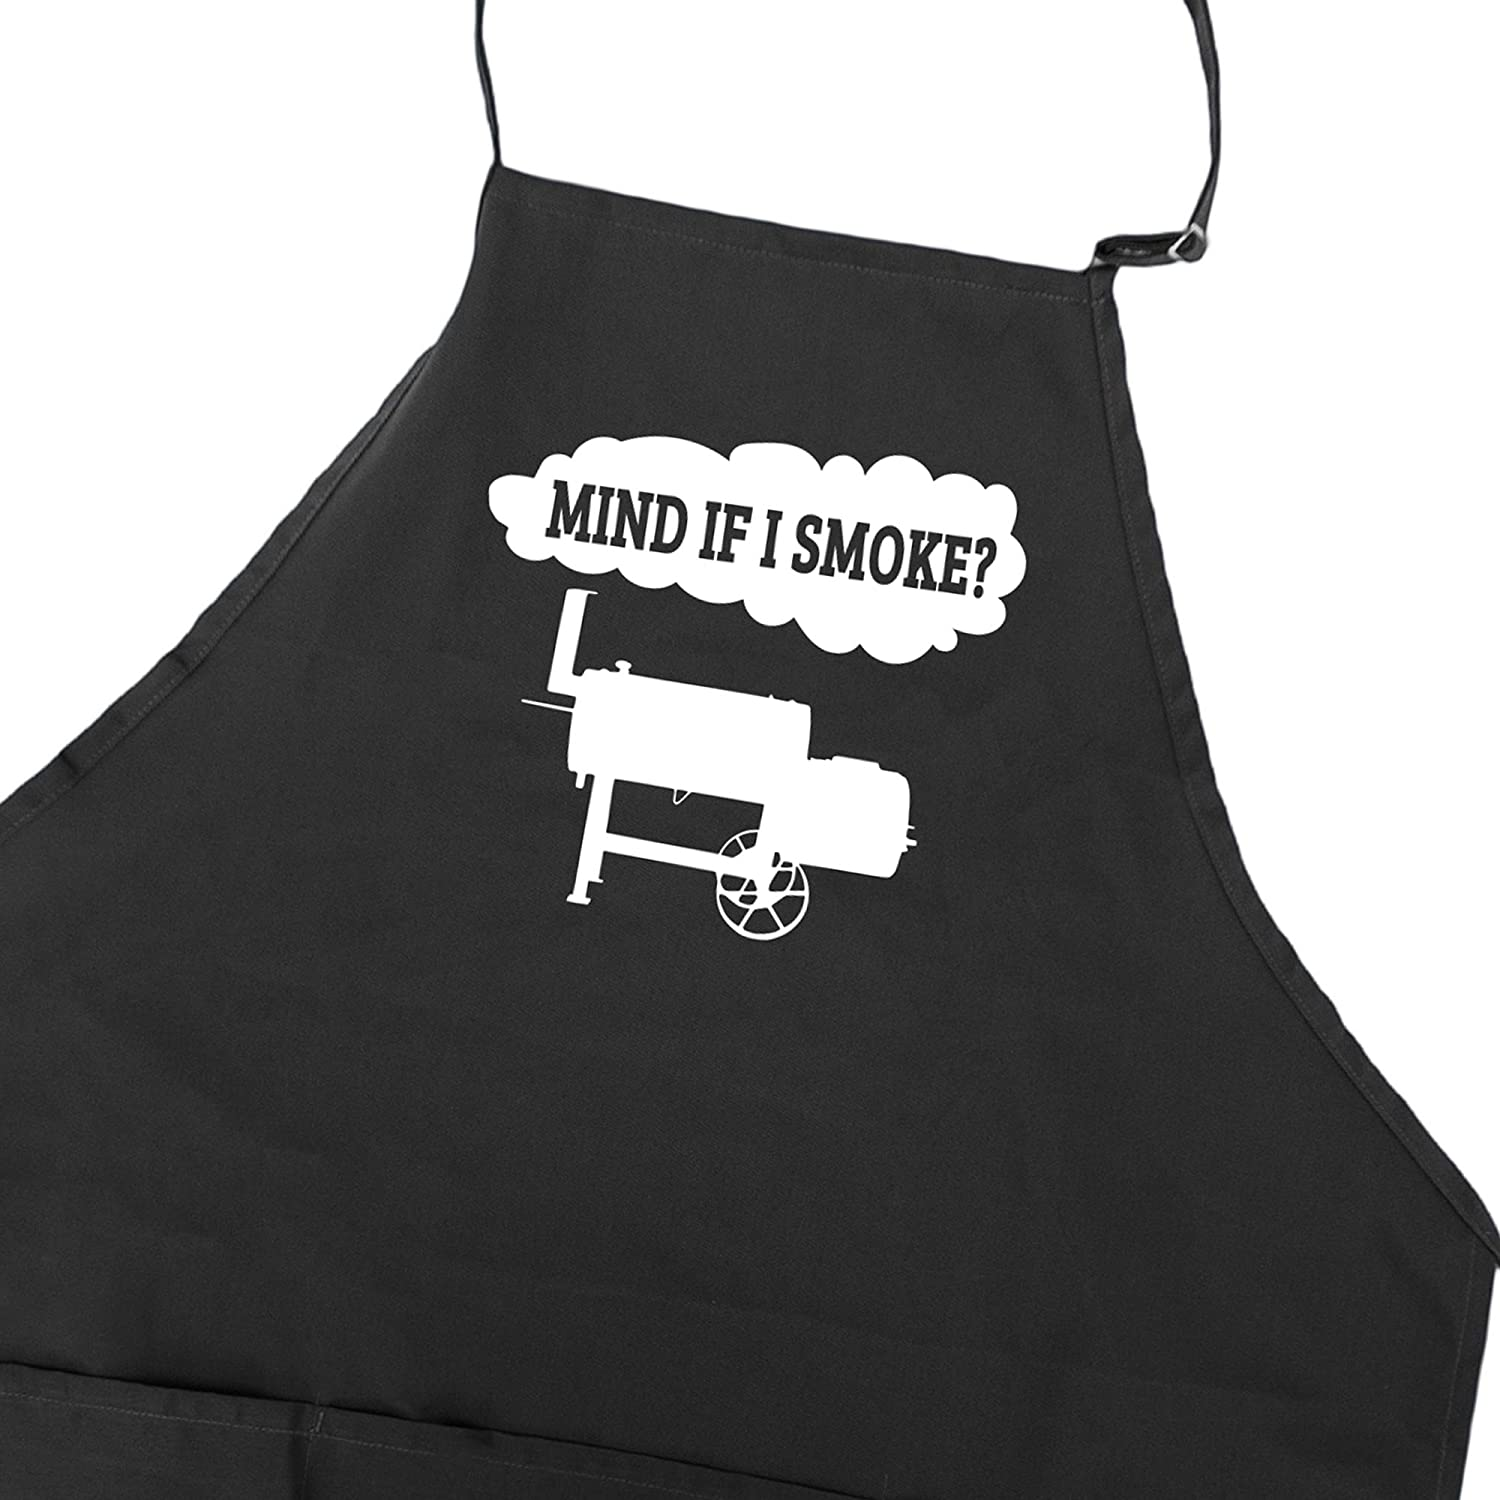 Funny BBQ Grill Apron for Men With Pockets Barbeque Meat Smoking Accessory Fathers Day Gift Idea for Dad Mind If I Smoke Offset Smoker